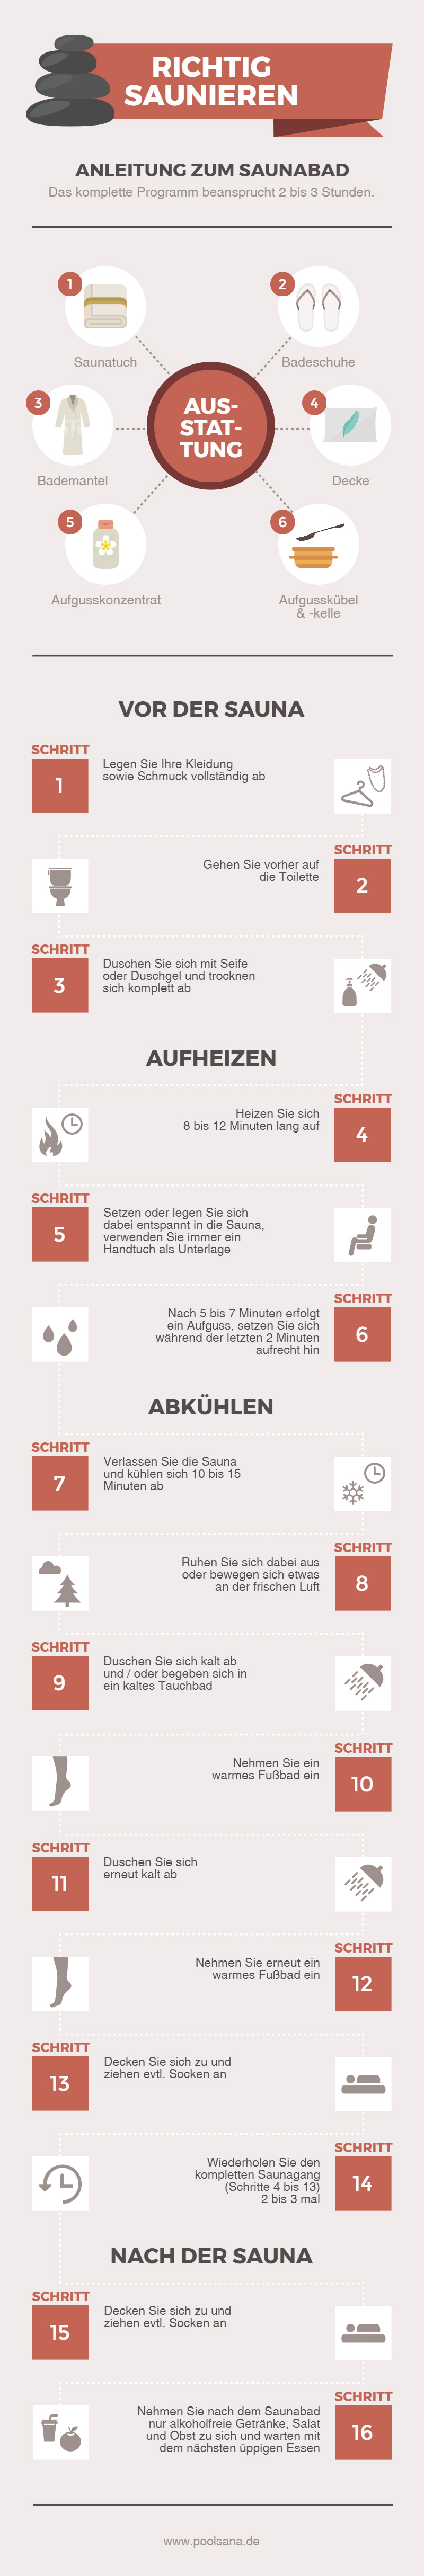 sauna f r anf nger step by step anleitung zum richtigen saunieren sauna infografik. Black Bedroom Furniture Sets. Home Design Ideas